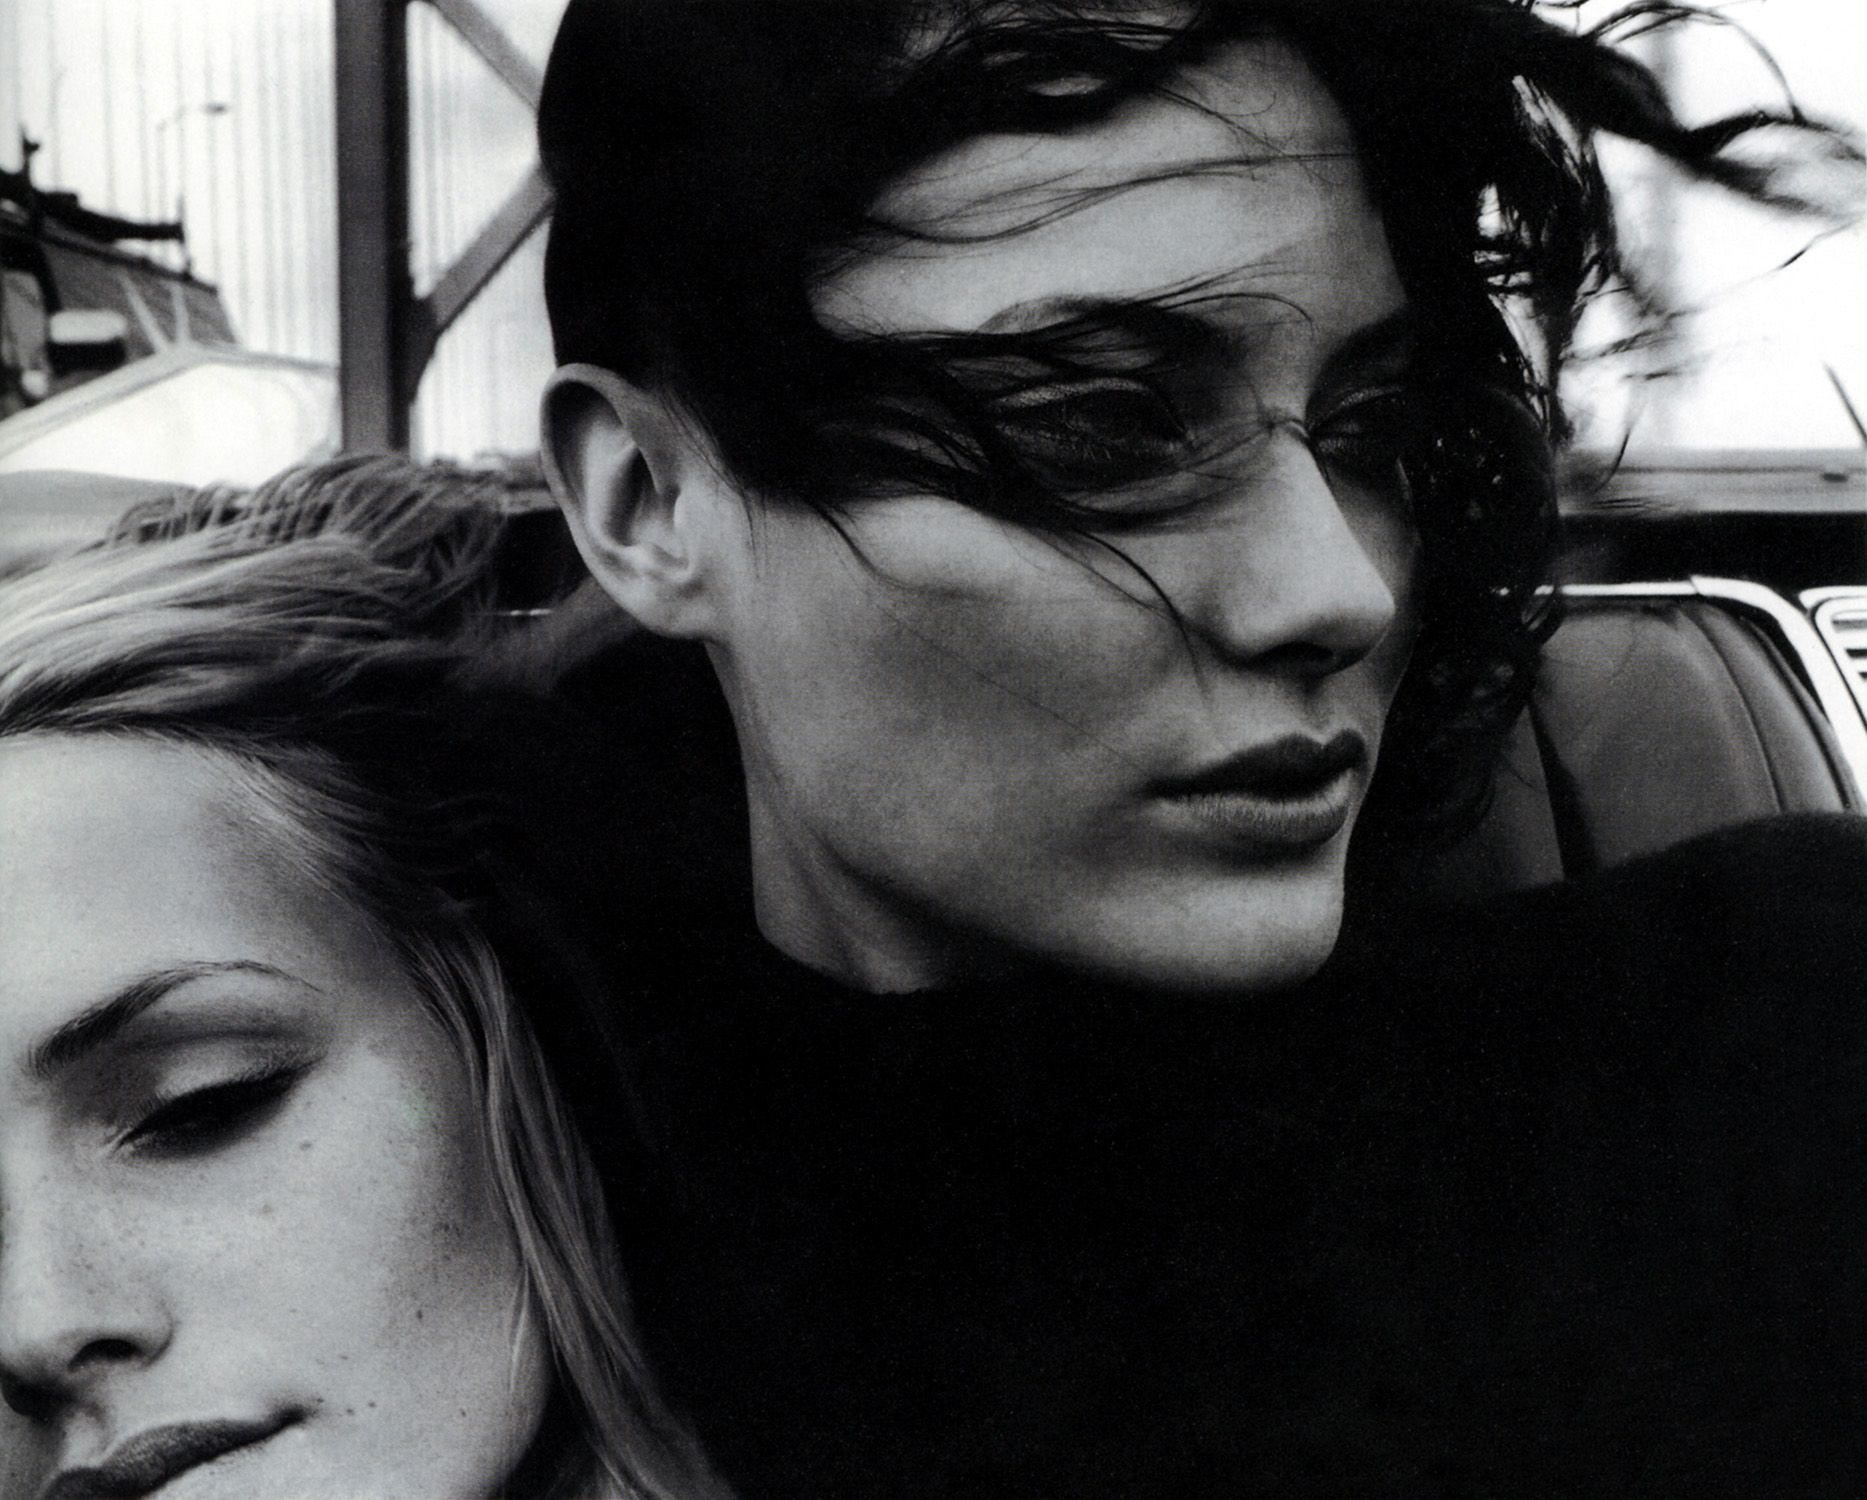 Amber Valletta and Shalom Harlow photographed by Craig McDean